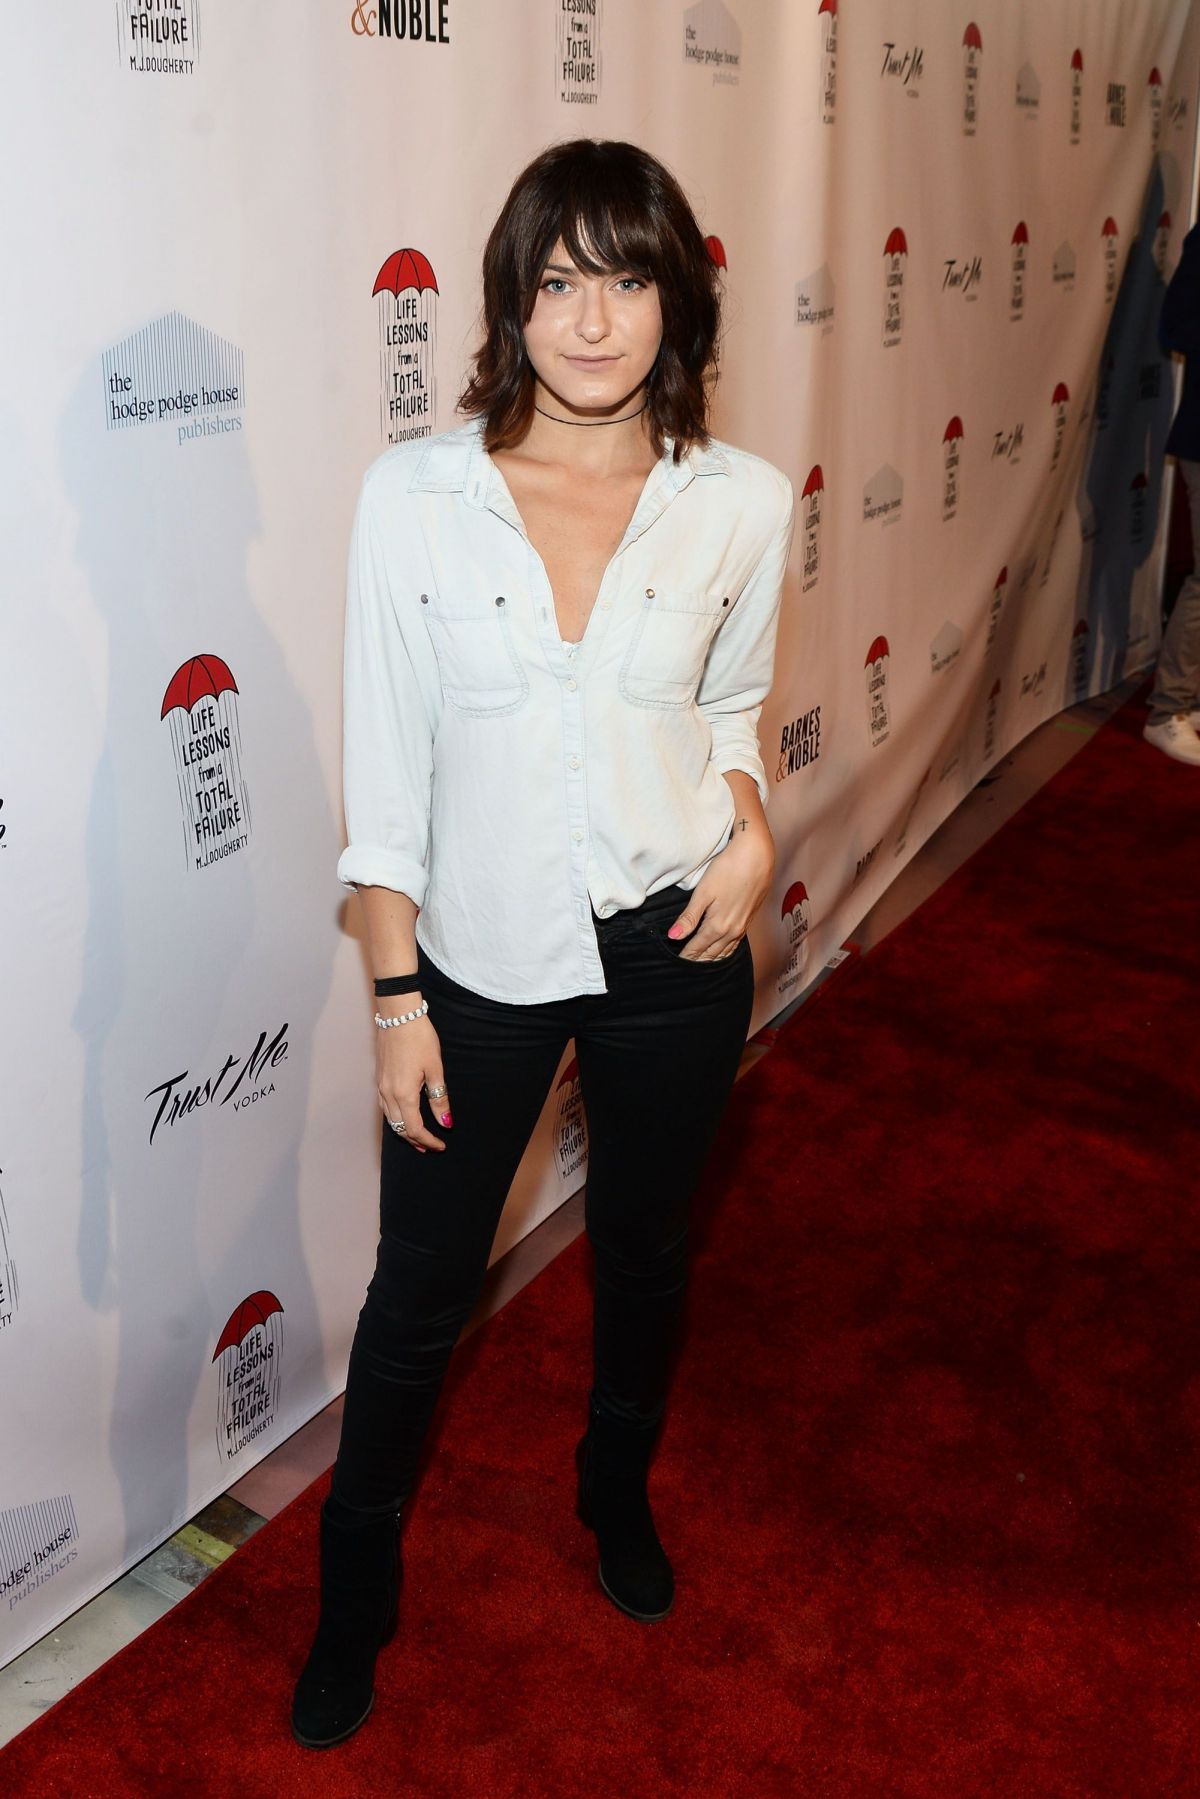 SCOUT TAYLOR-COMPTON at MJ Dougherty